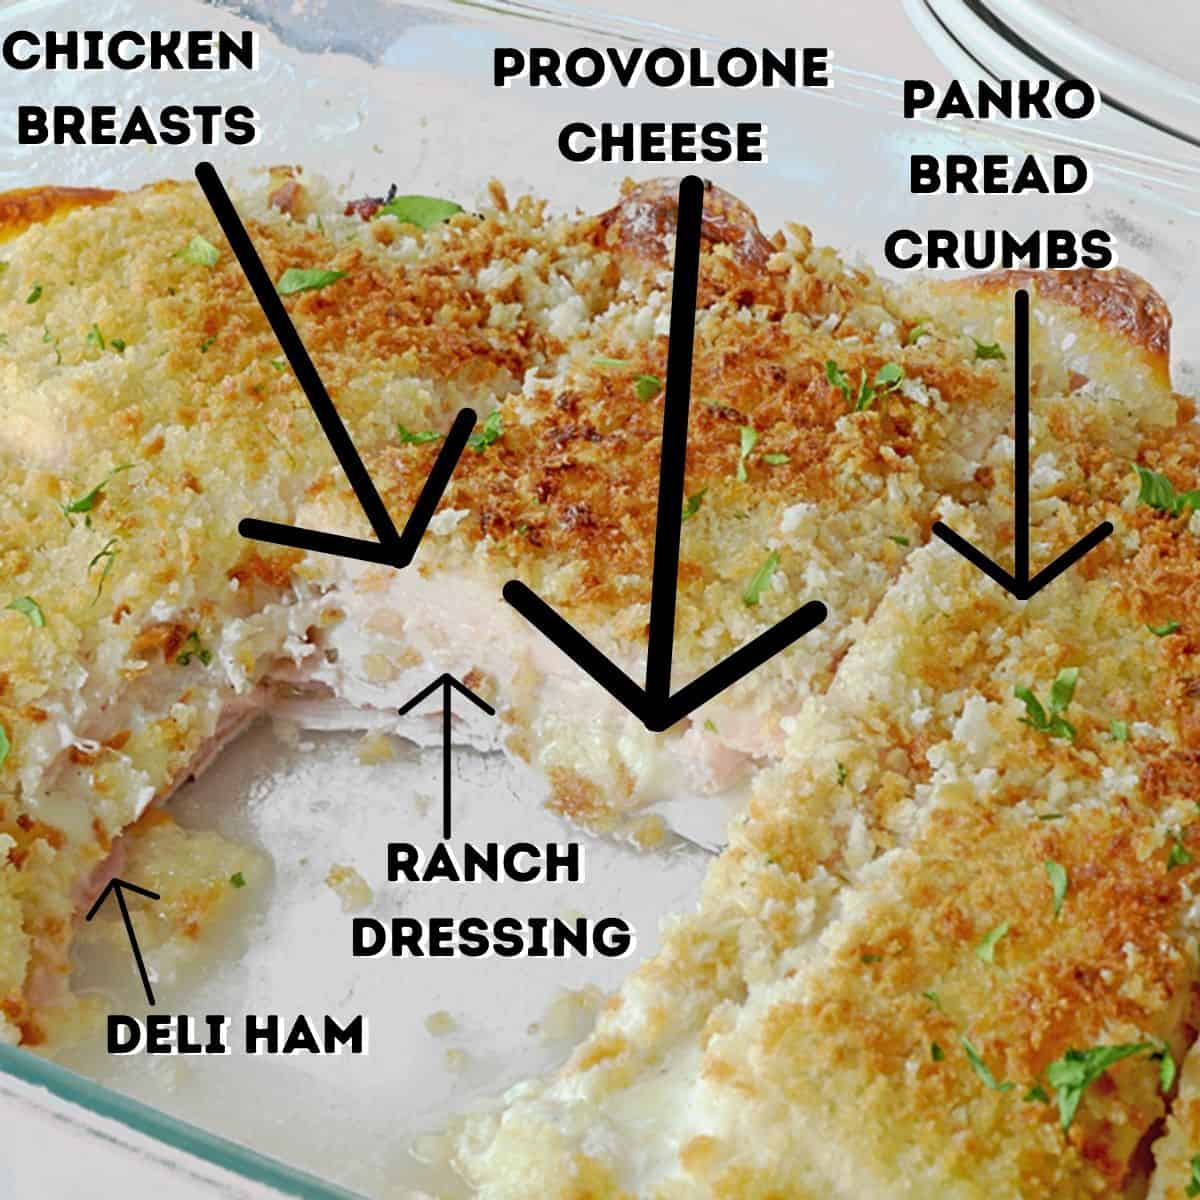 Chicken cordon bleu casserole with a piece cut out and list of ingredients.